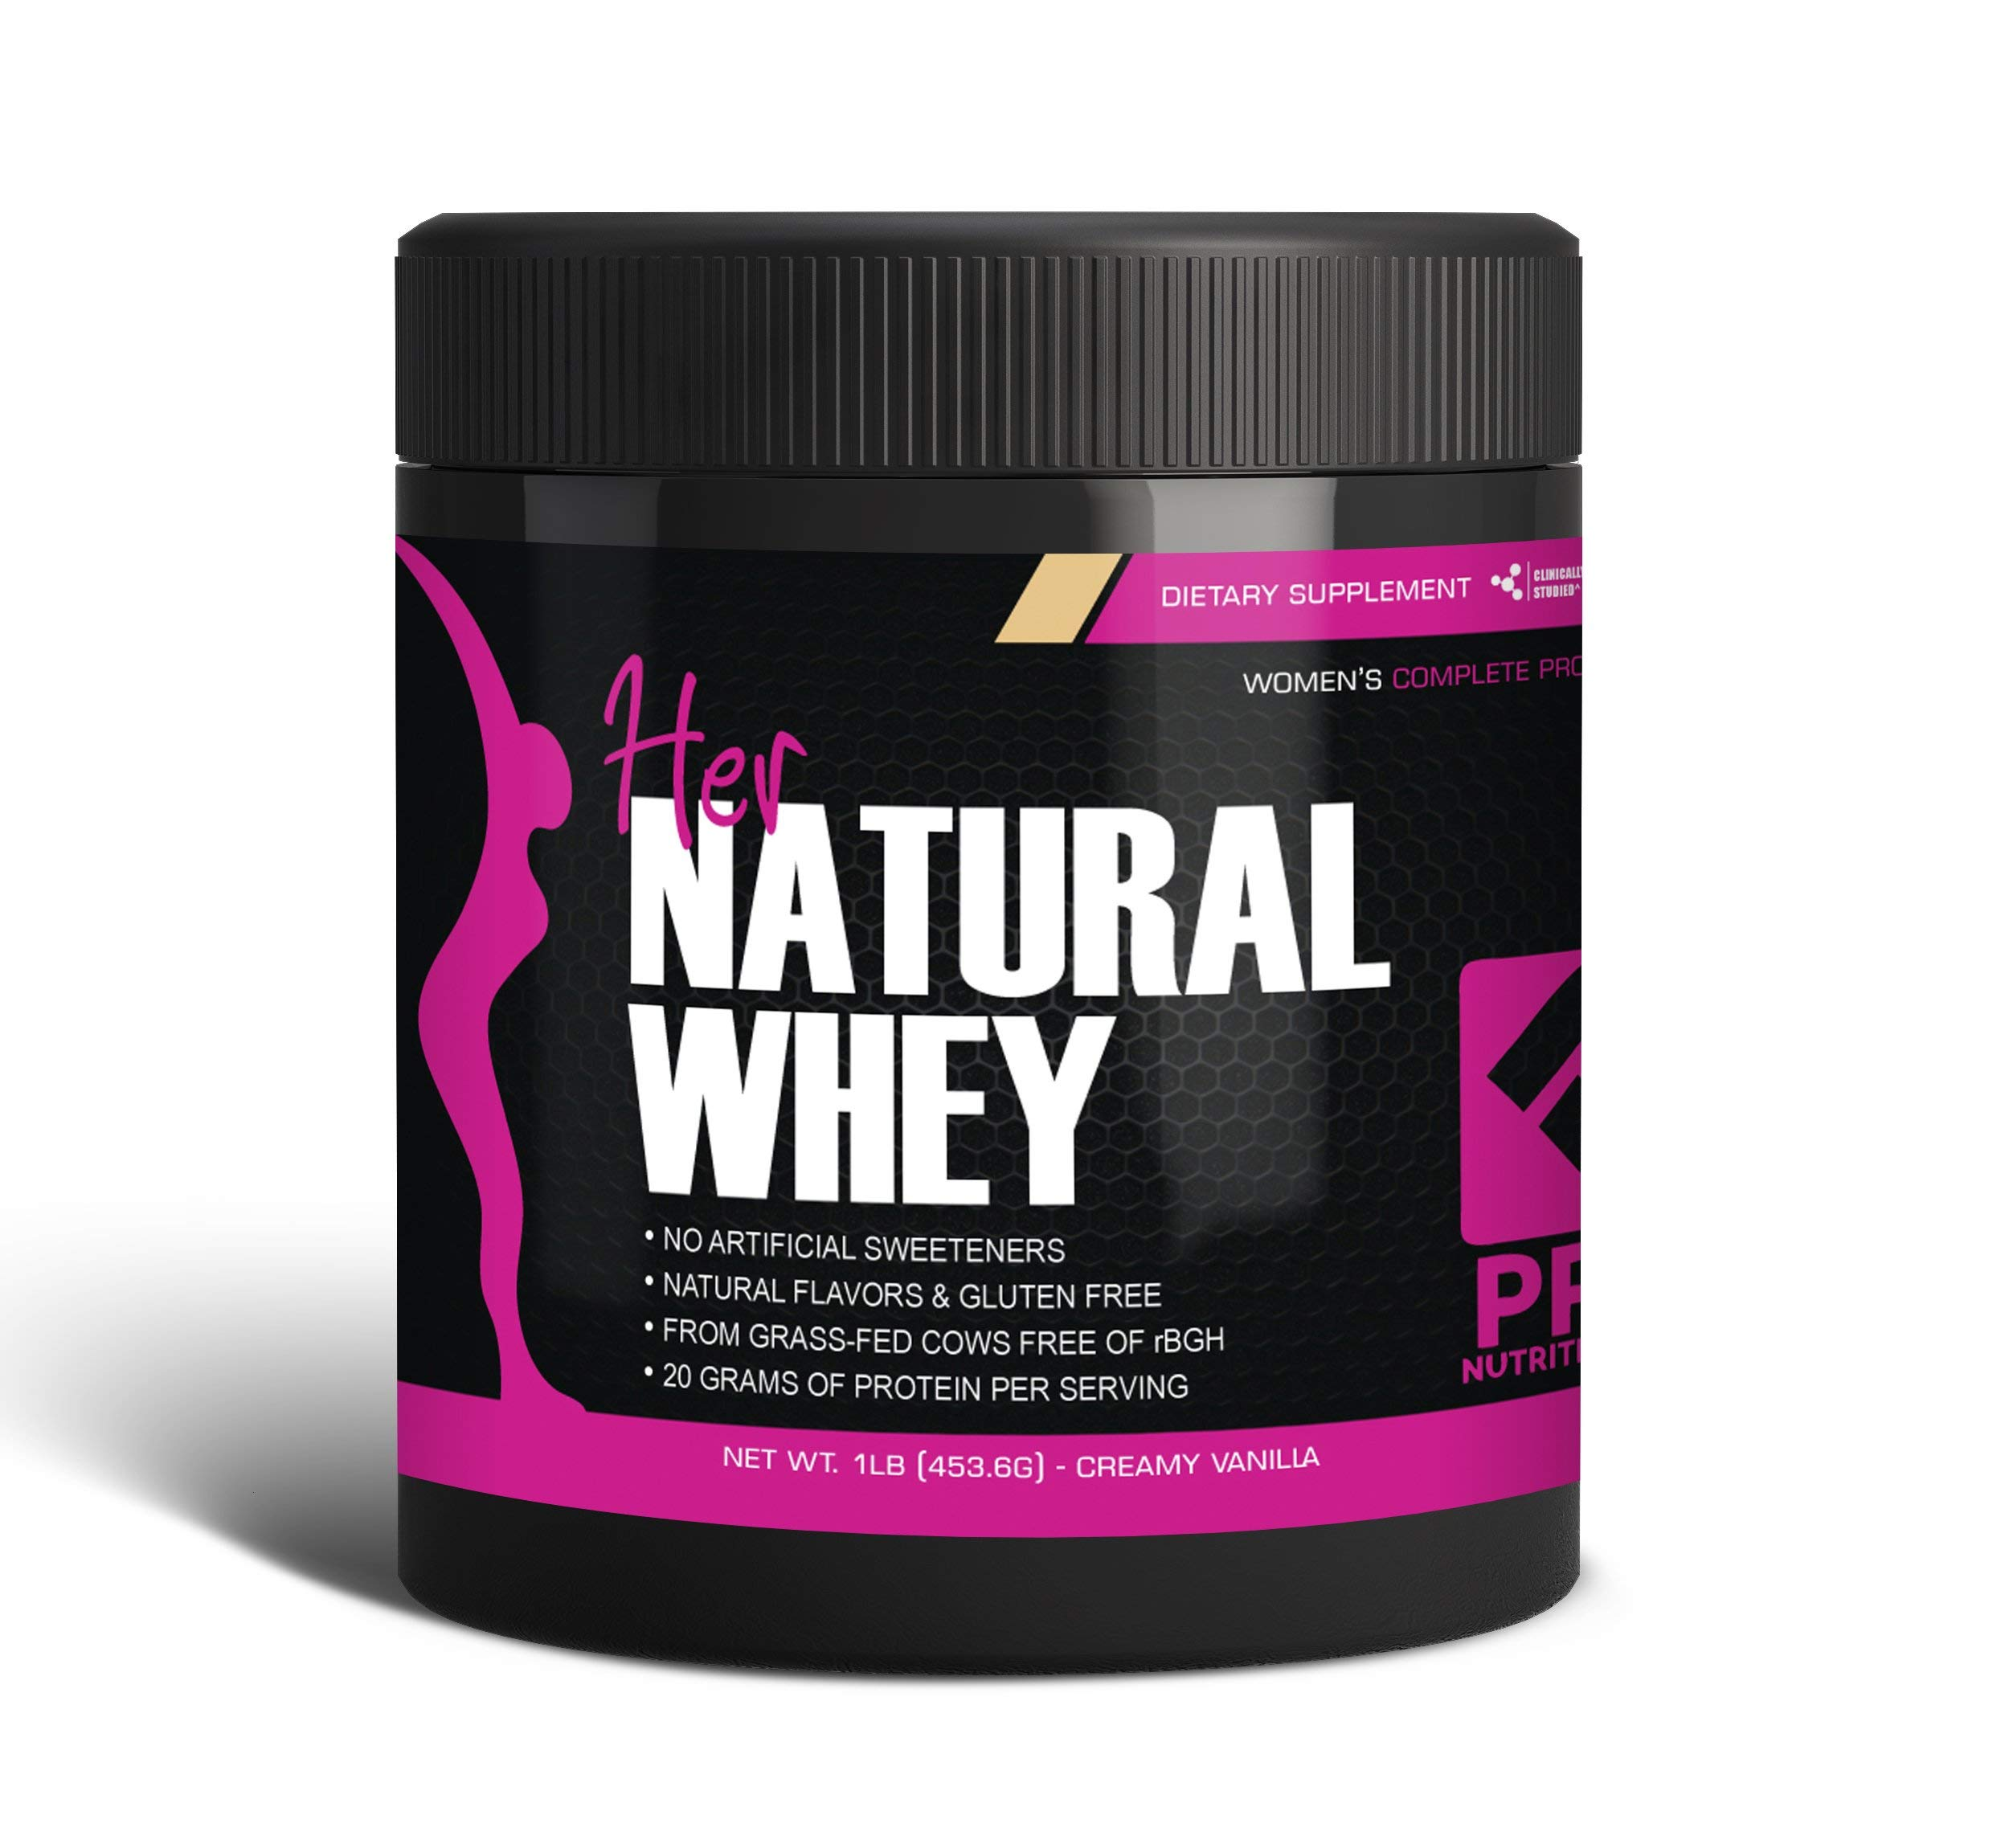 Protein Powder For Women - Her Natural Whey Protein Powder For Weight Loss & To Support Lean Muscle Mass - Low Carb - Gluten Free - rBGH Hormone Free - Naturally Sweetened with Stevia - Designed For Optimal Fat Loss (Creamy Vanilla) - Net Wt. 1 LB by Pro Nutrition Labs